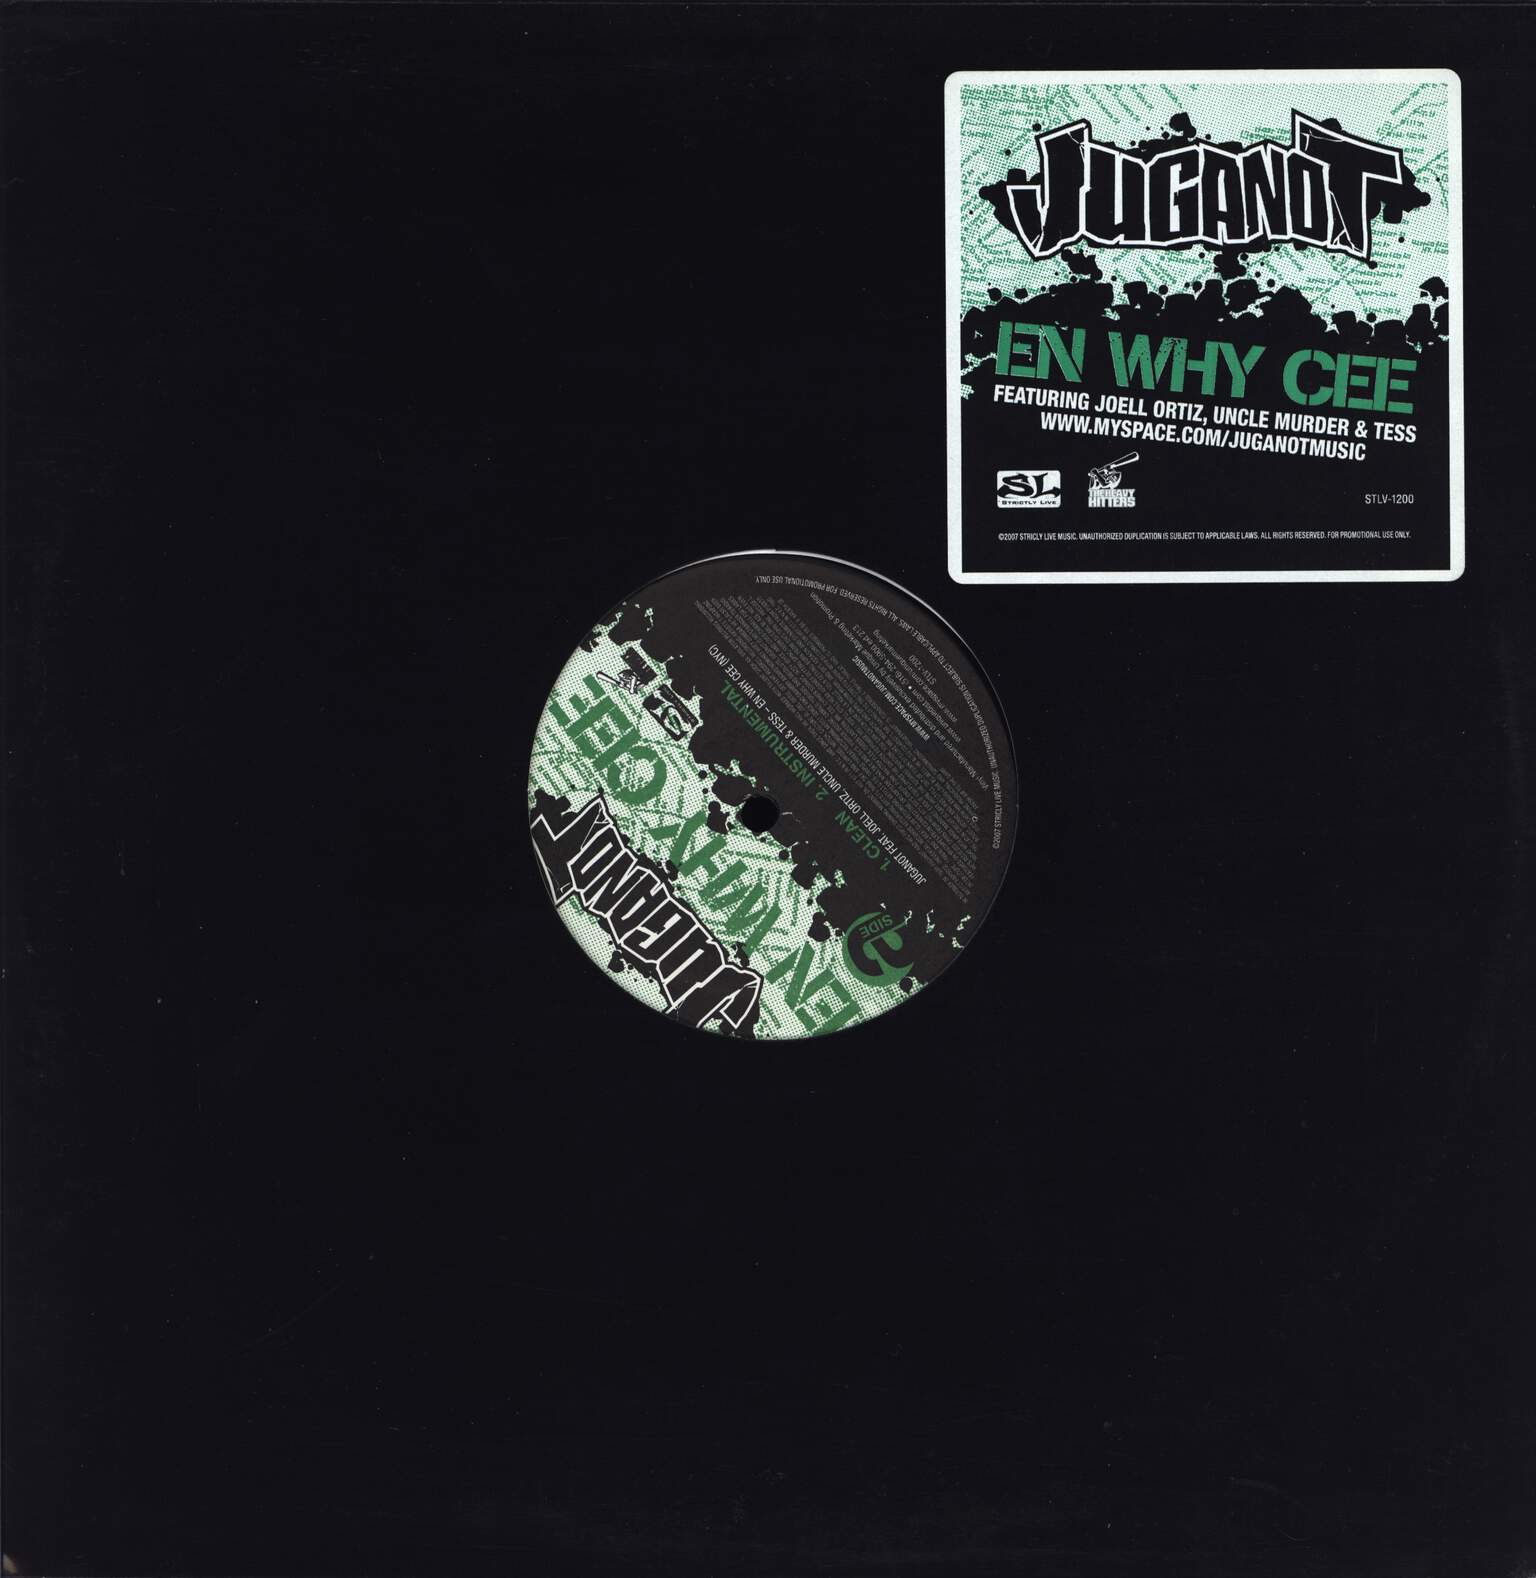 "Juganot: En Why Cee, 12"" Maxi Single (Vinyl)"